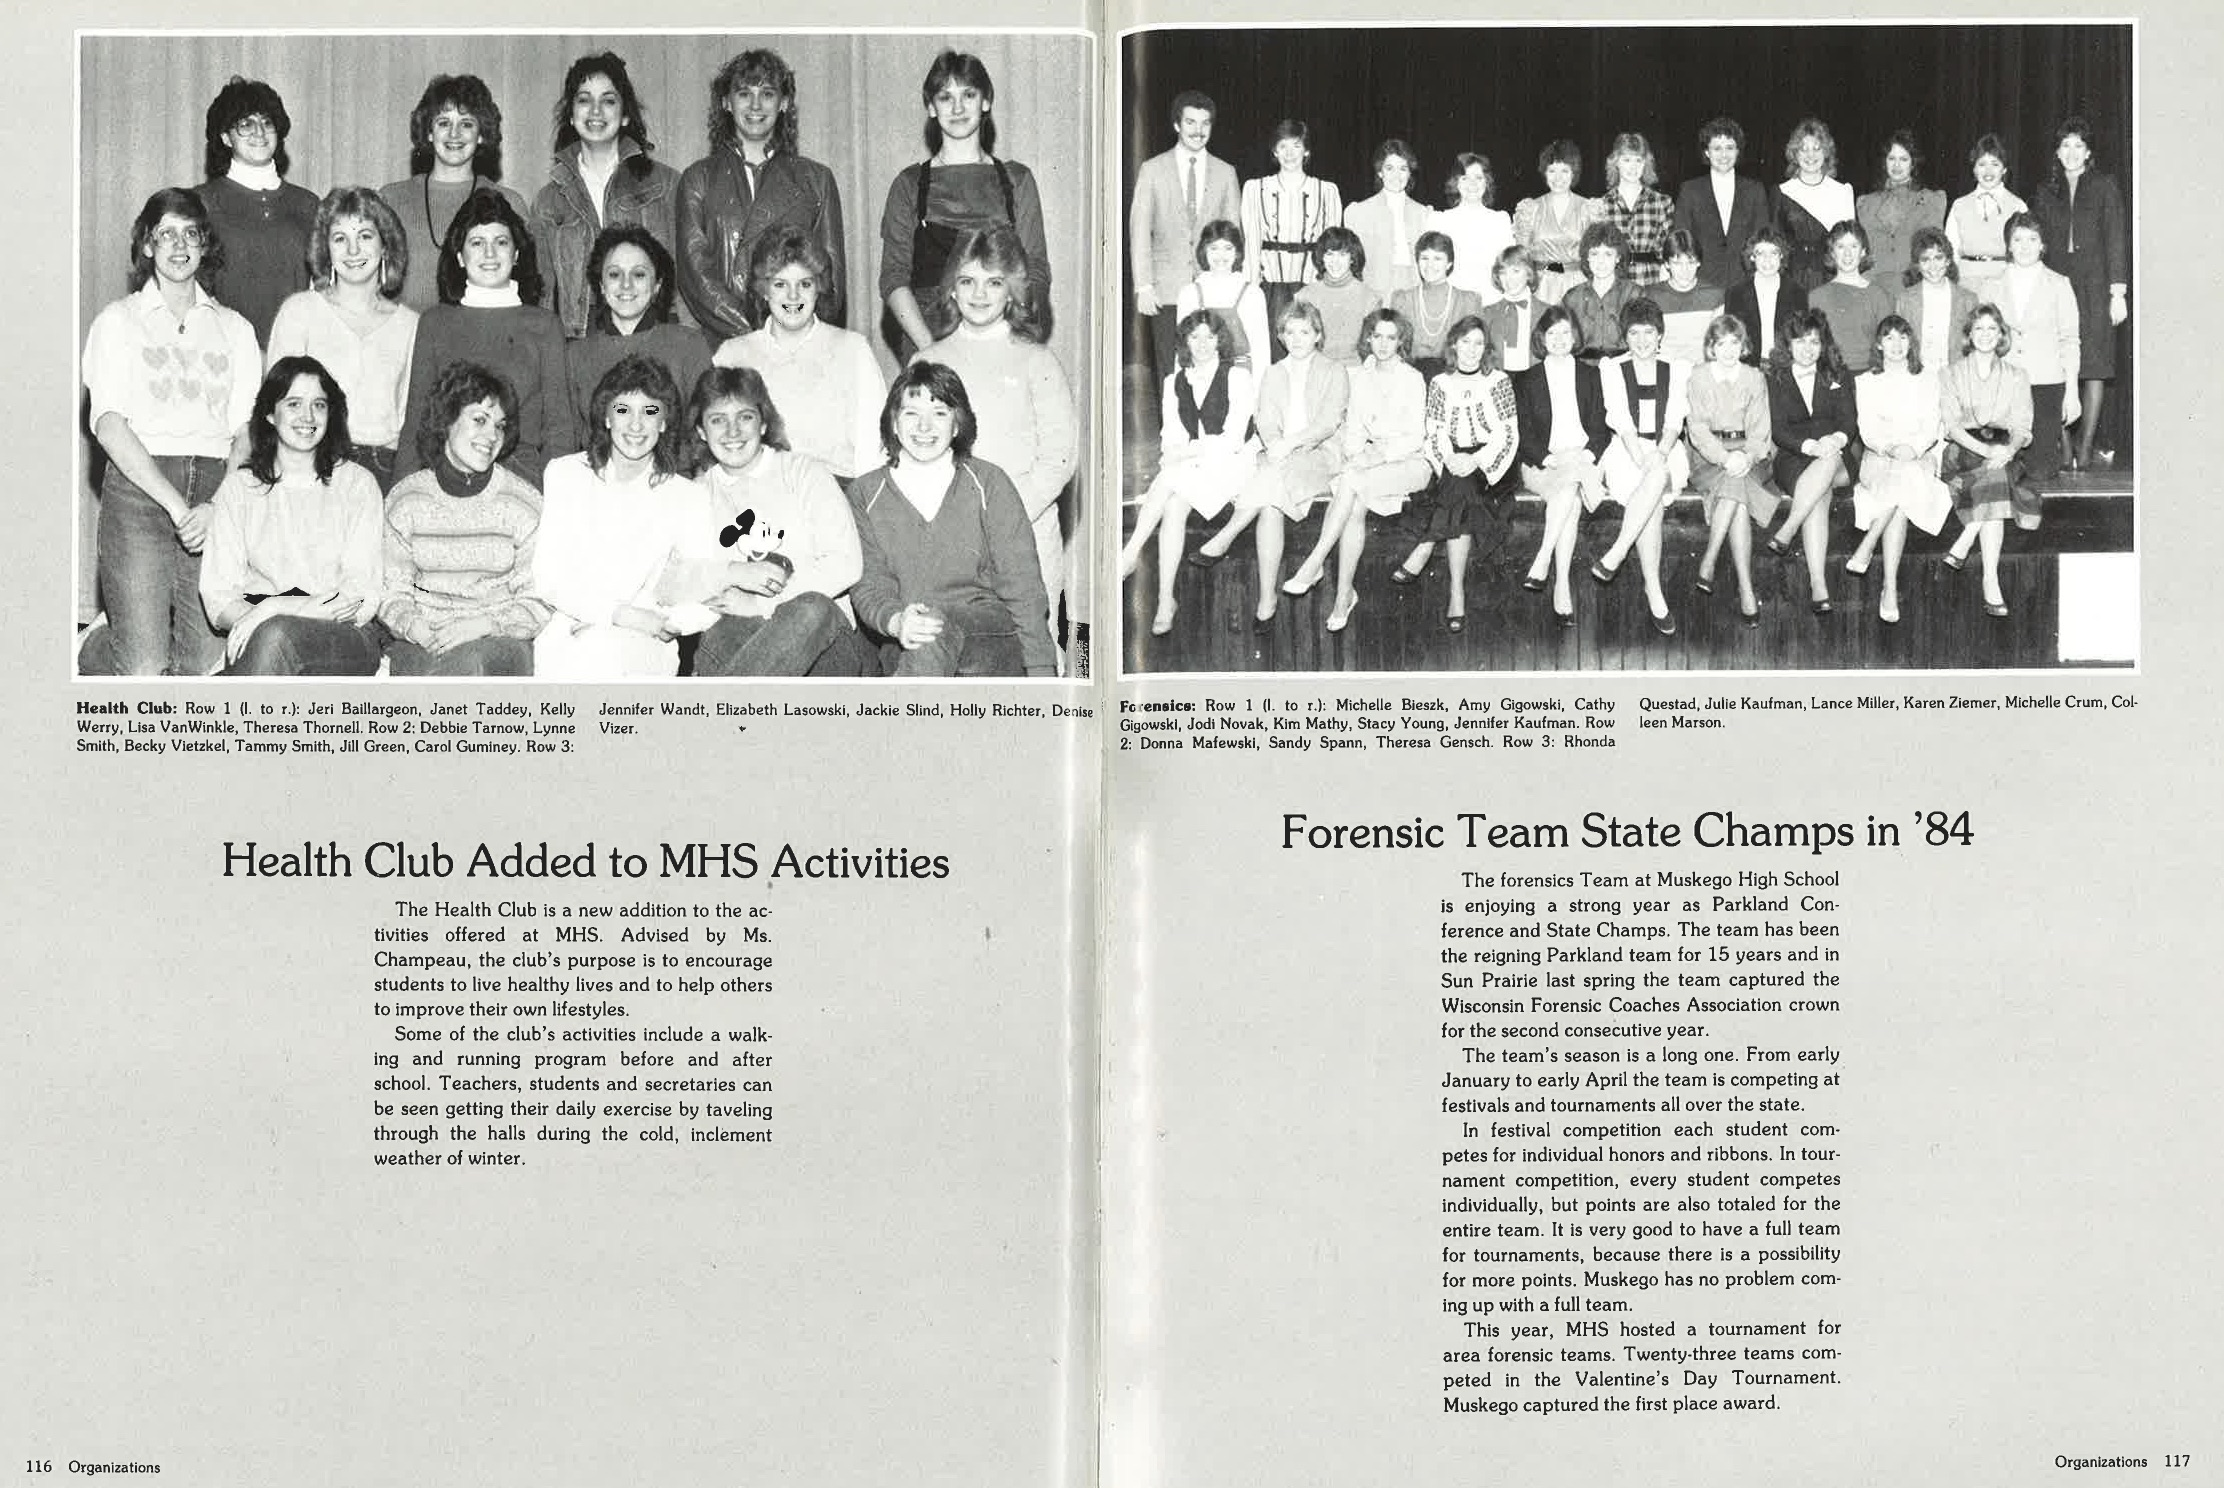 1985_Yearbook_56.jpg